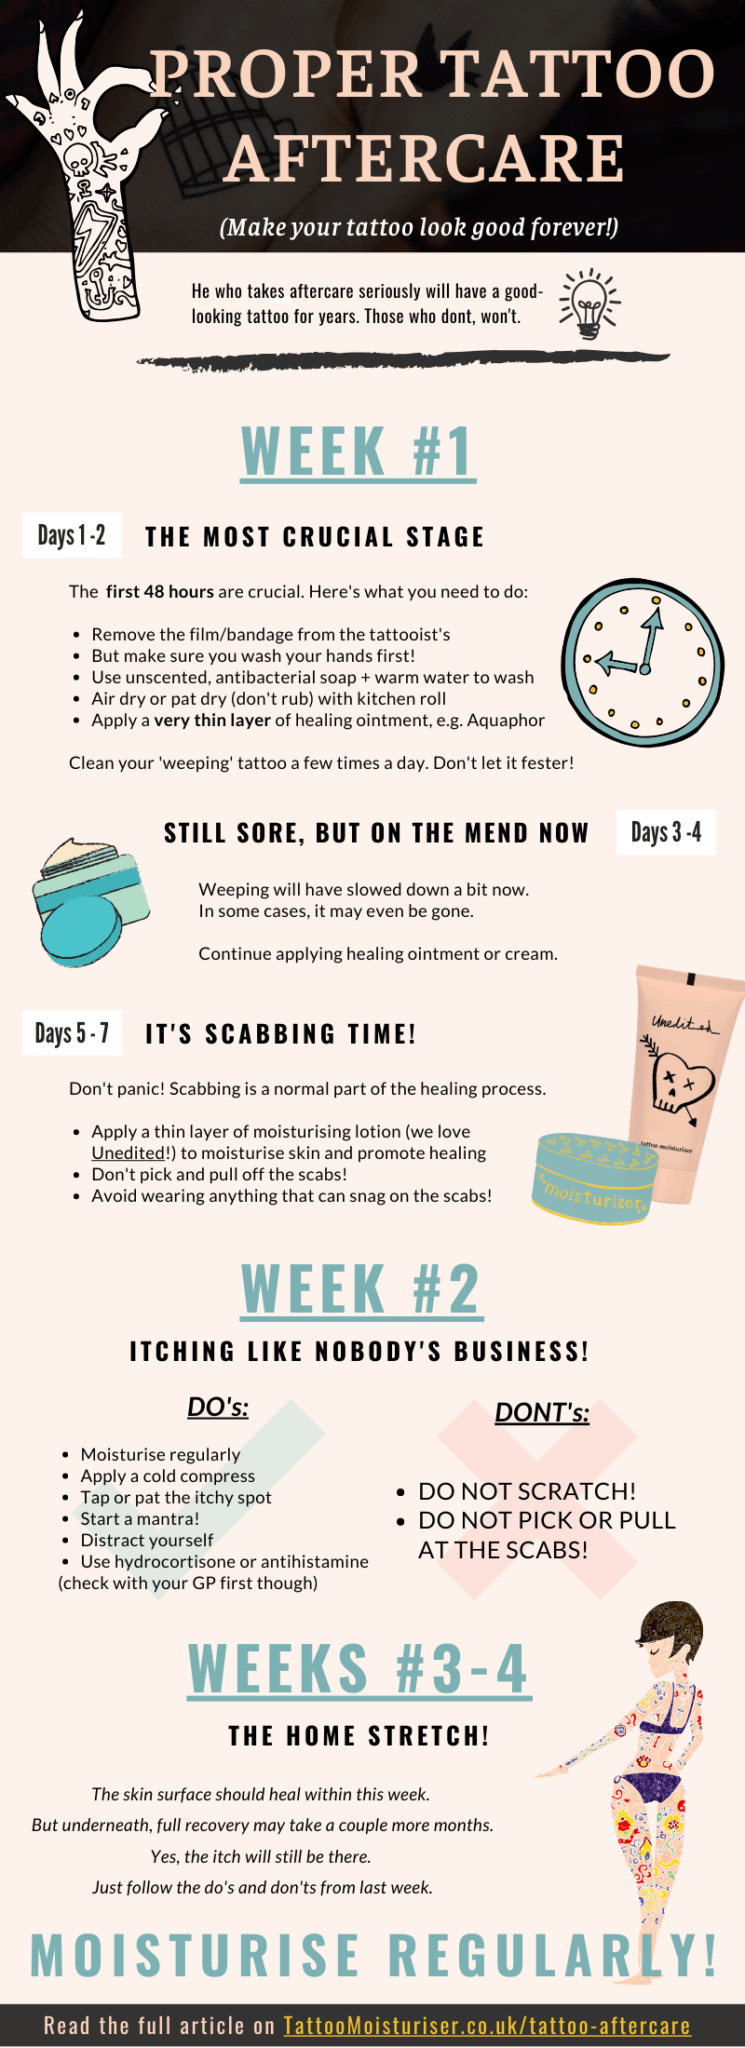 Proper Tattoo Aftercare: Make Your Tattoo Look Good Forever! #infographic